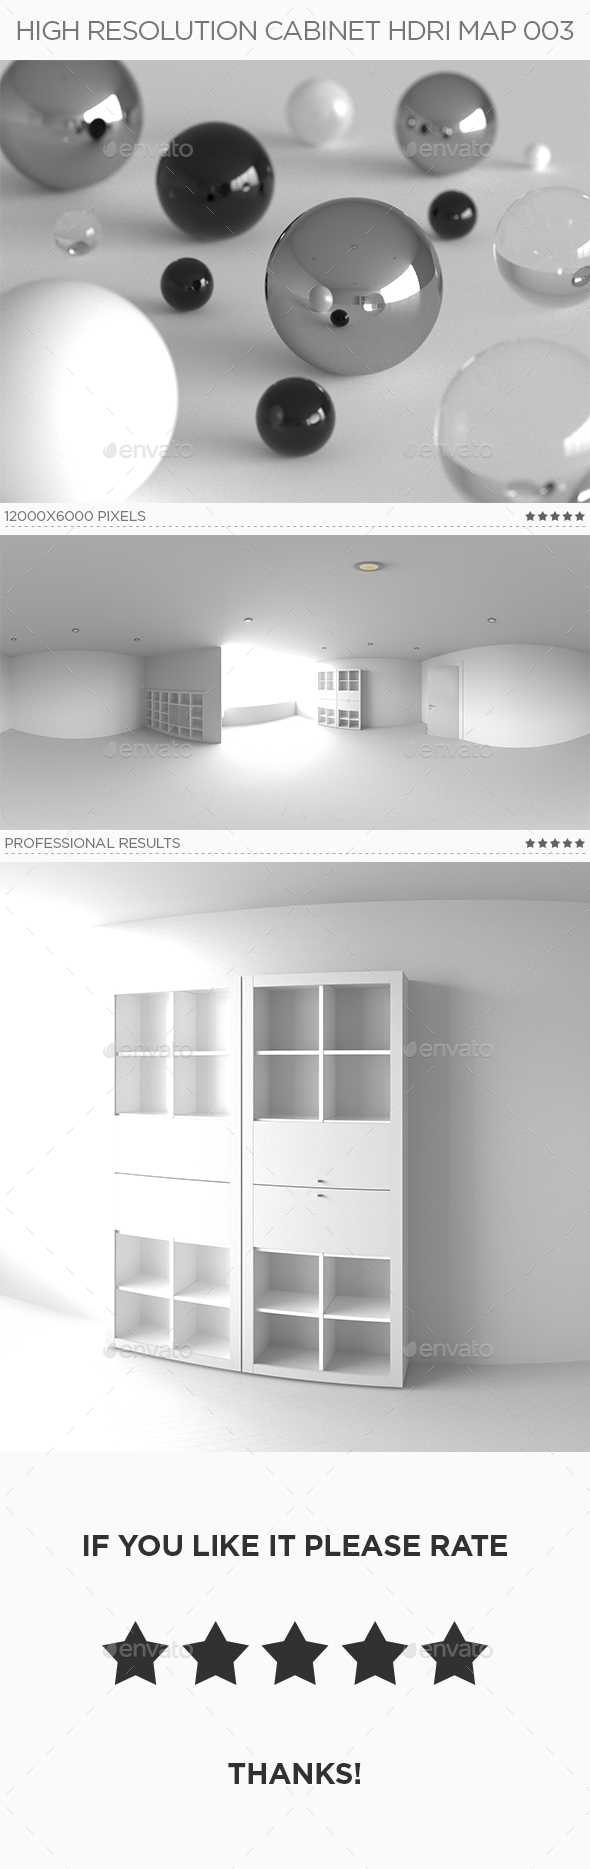 High Resolution Cabinet HDRi Map 003 - 3DOcean Item for Sale